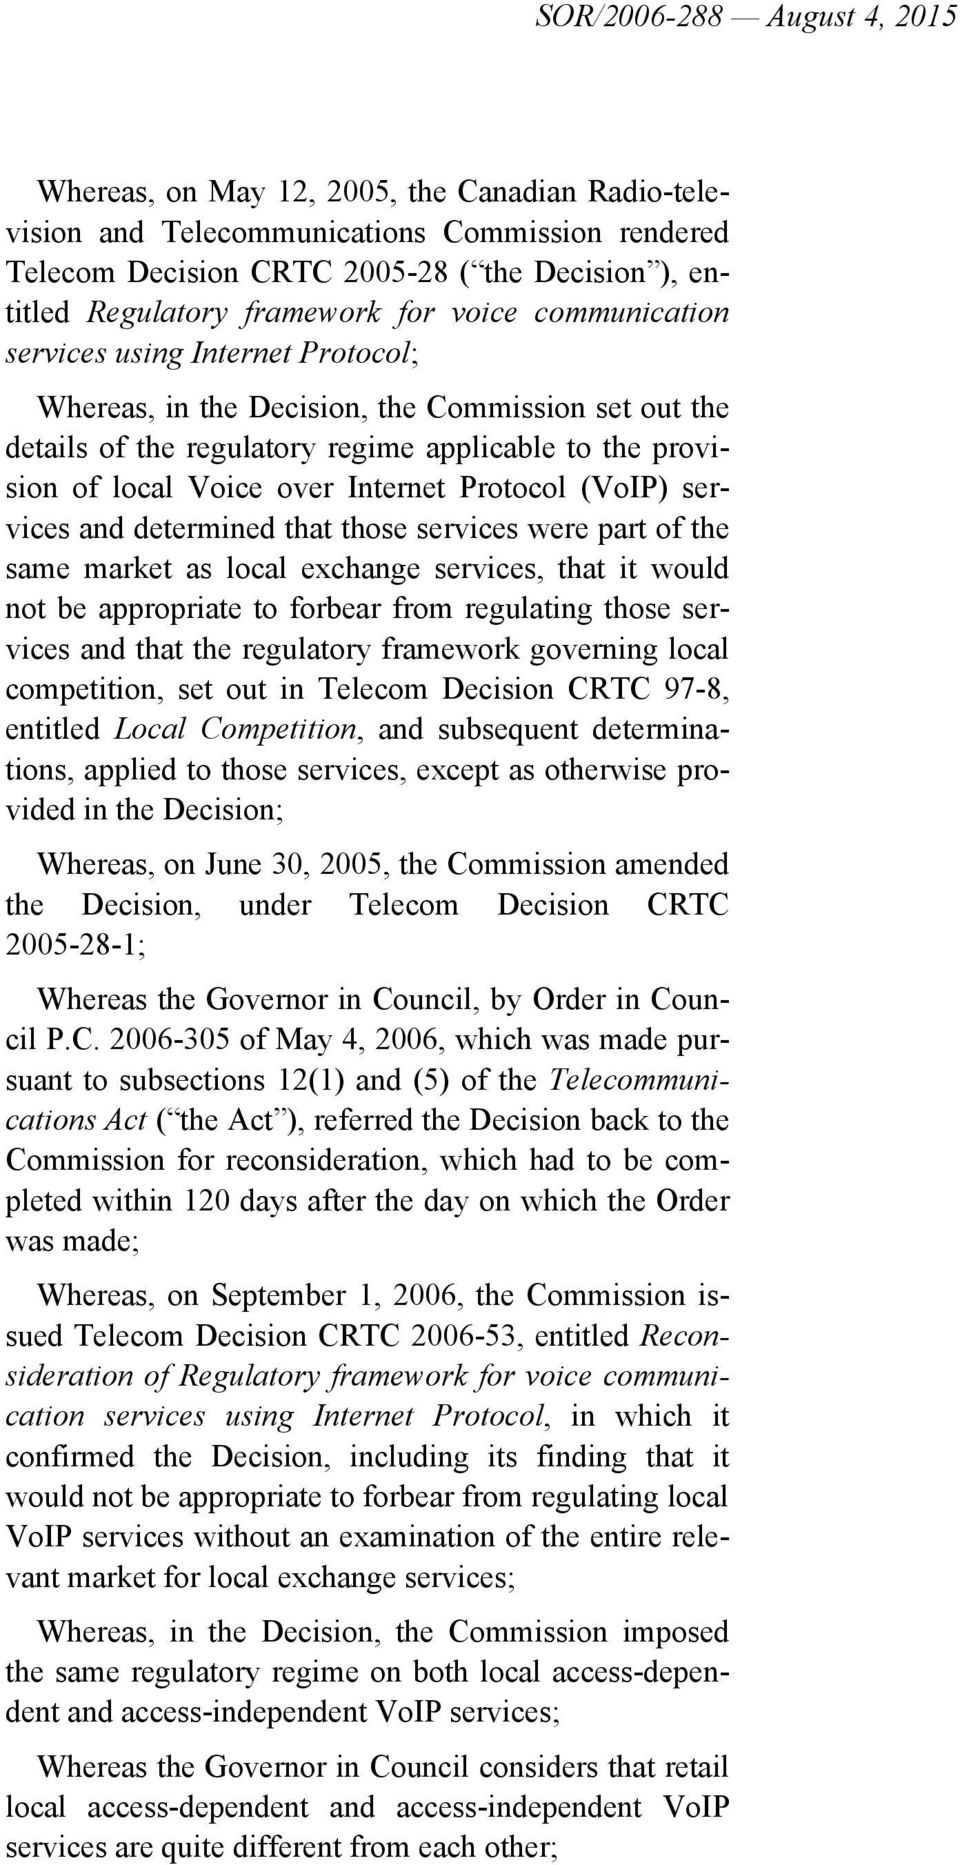 over Internet Protocol (VoIP) services and determined that those services were part of the same market as local exchange services, that it would not be appropriate to forbear from regulating those